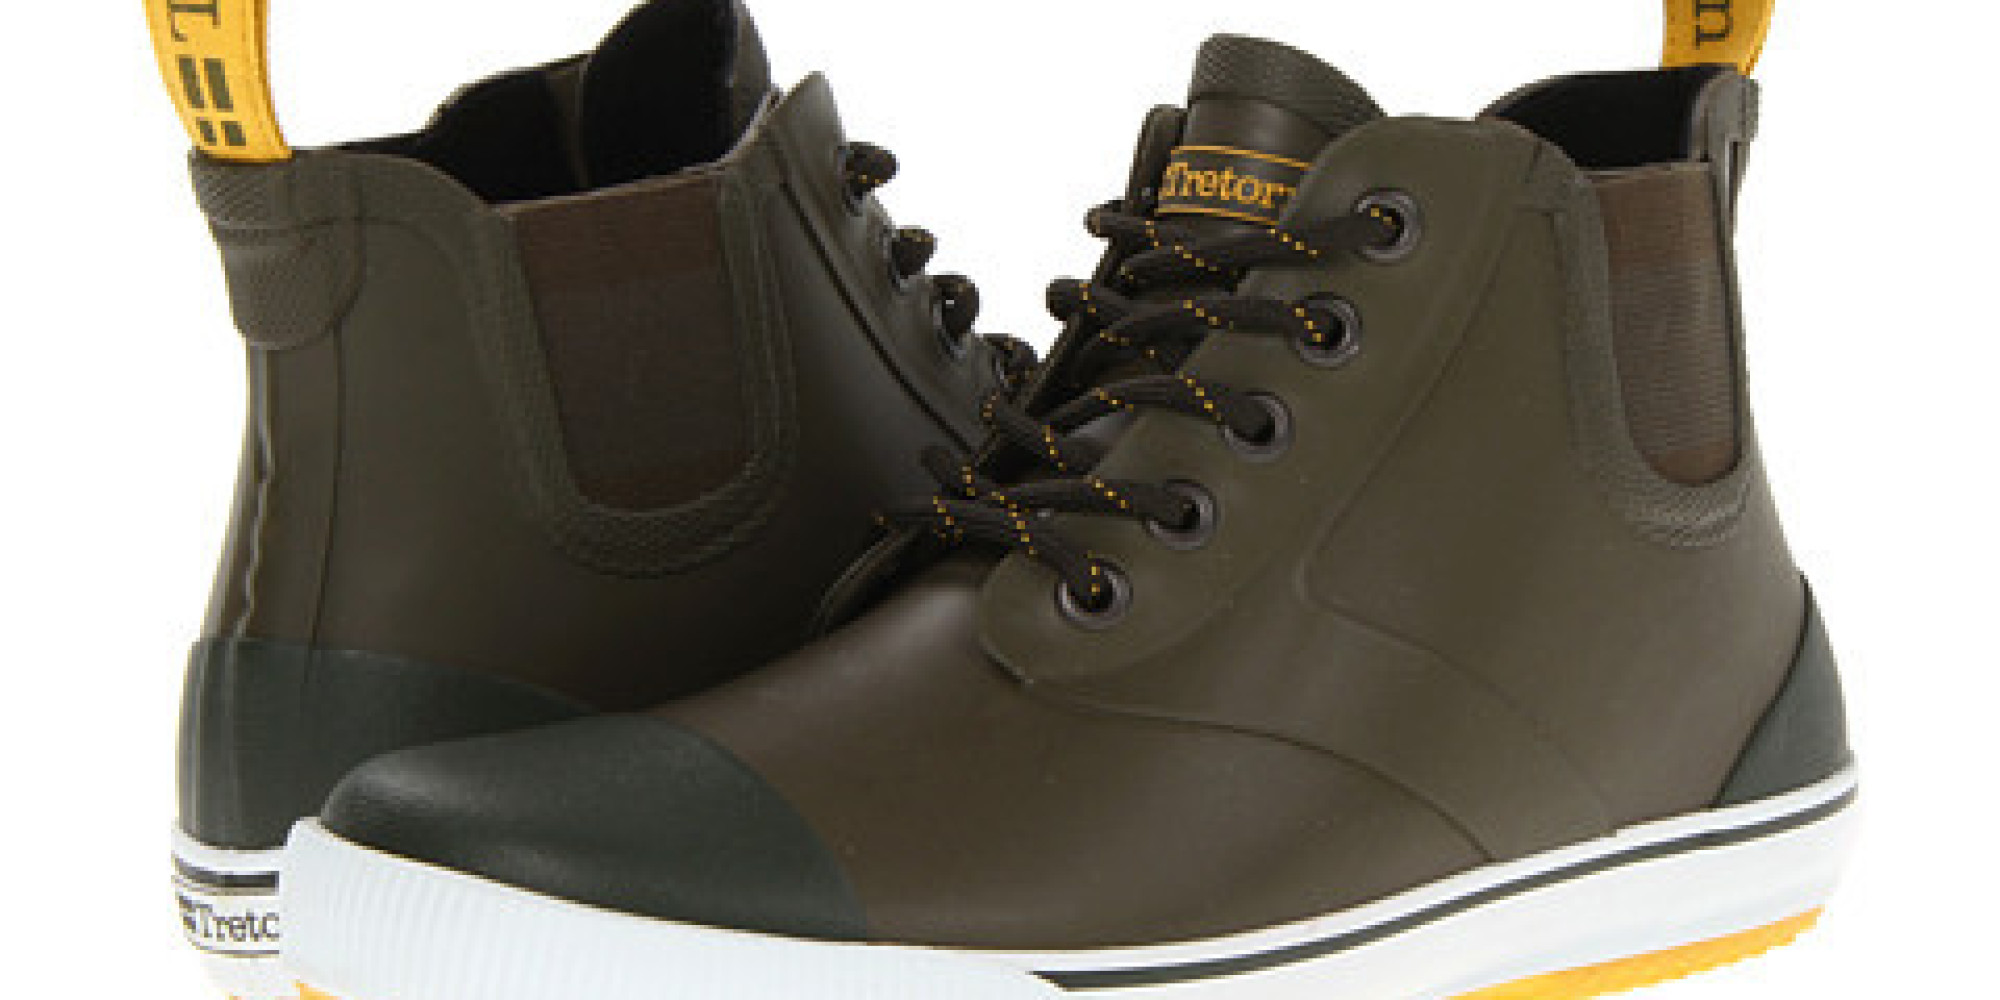 Quality All Weather Boots You Will Love